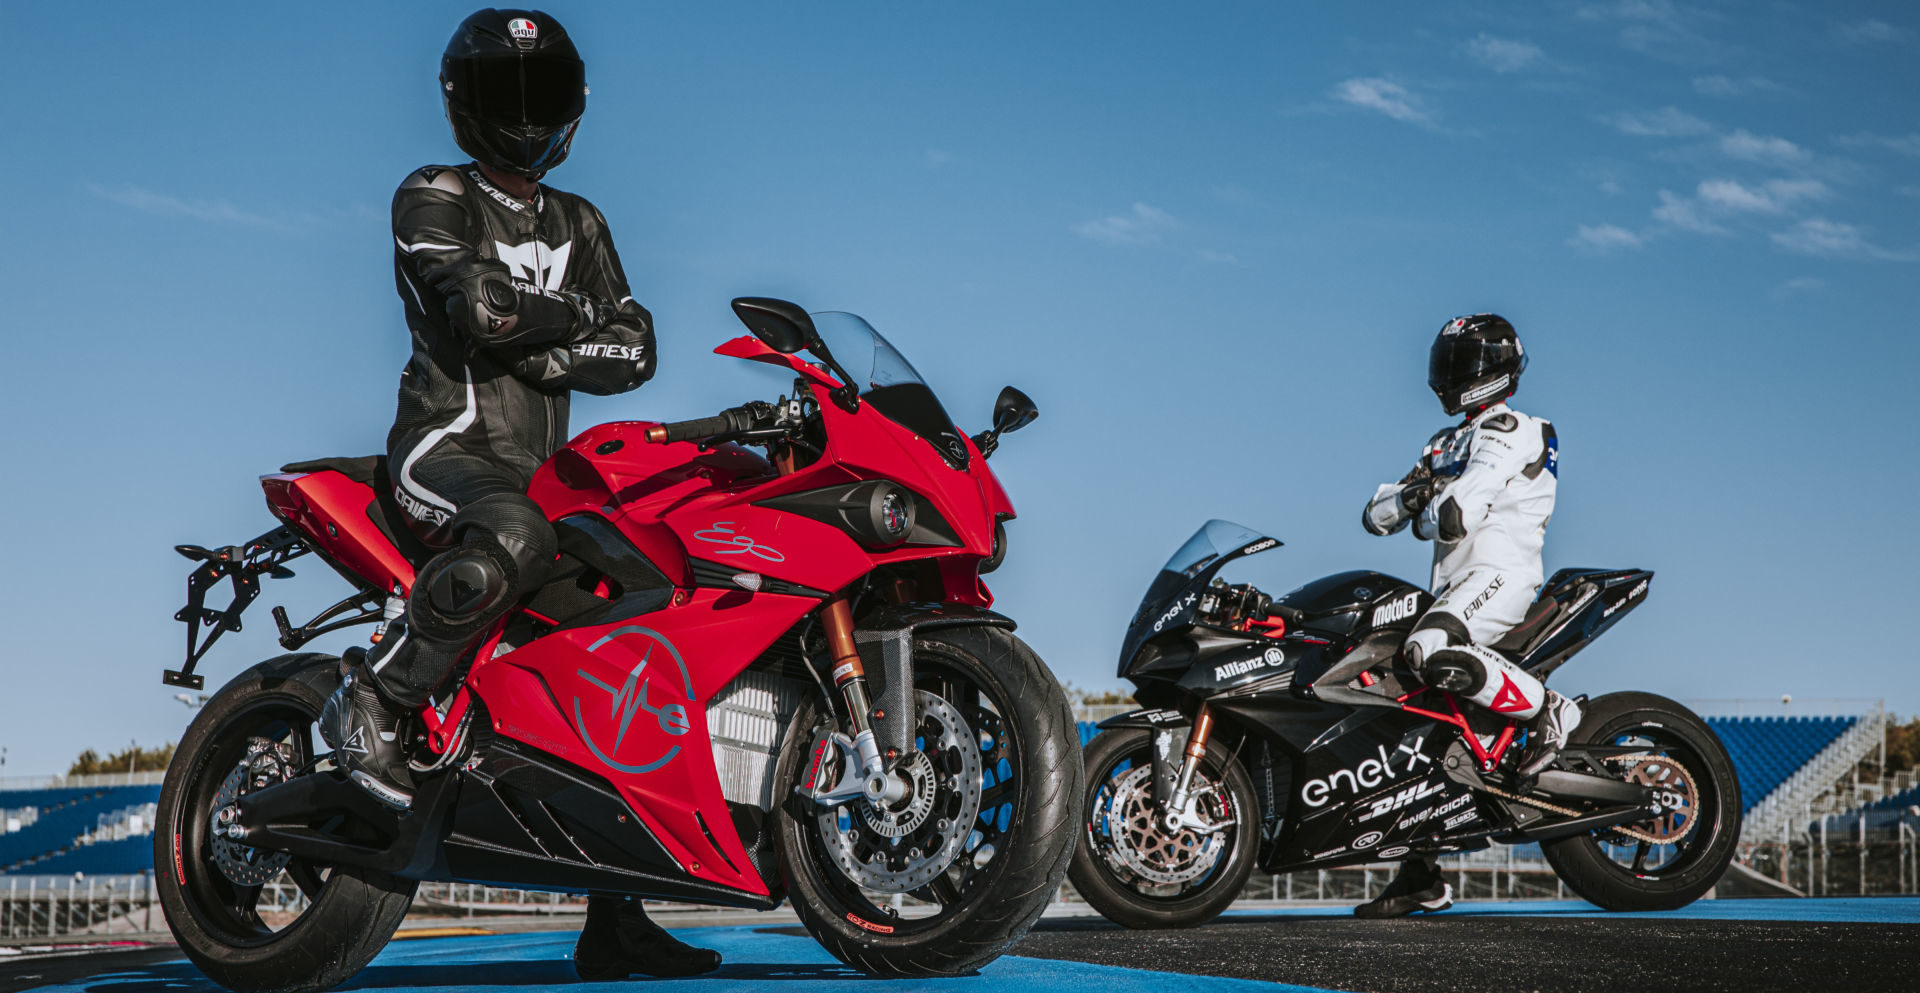 An Energica Ego+ (left) and Ego Corsa racebike (right). Photo by Marcello Mannoni, courtesy of Energica.